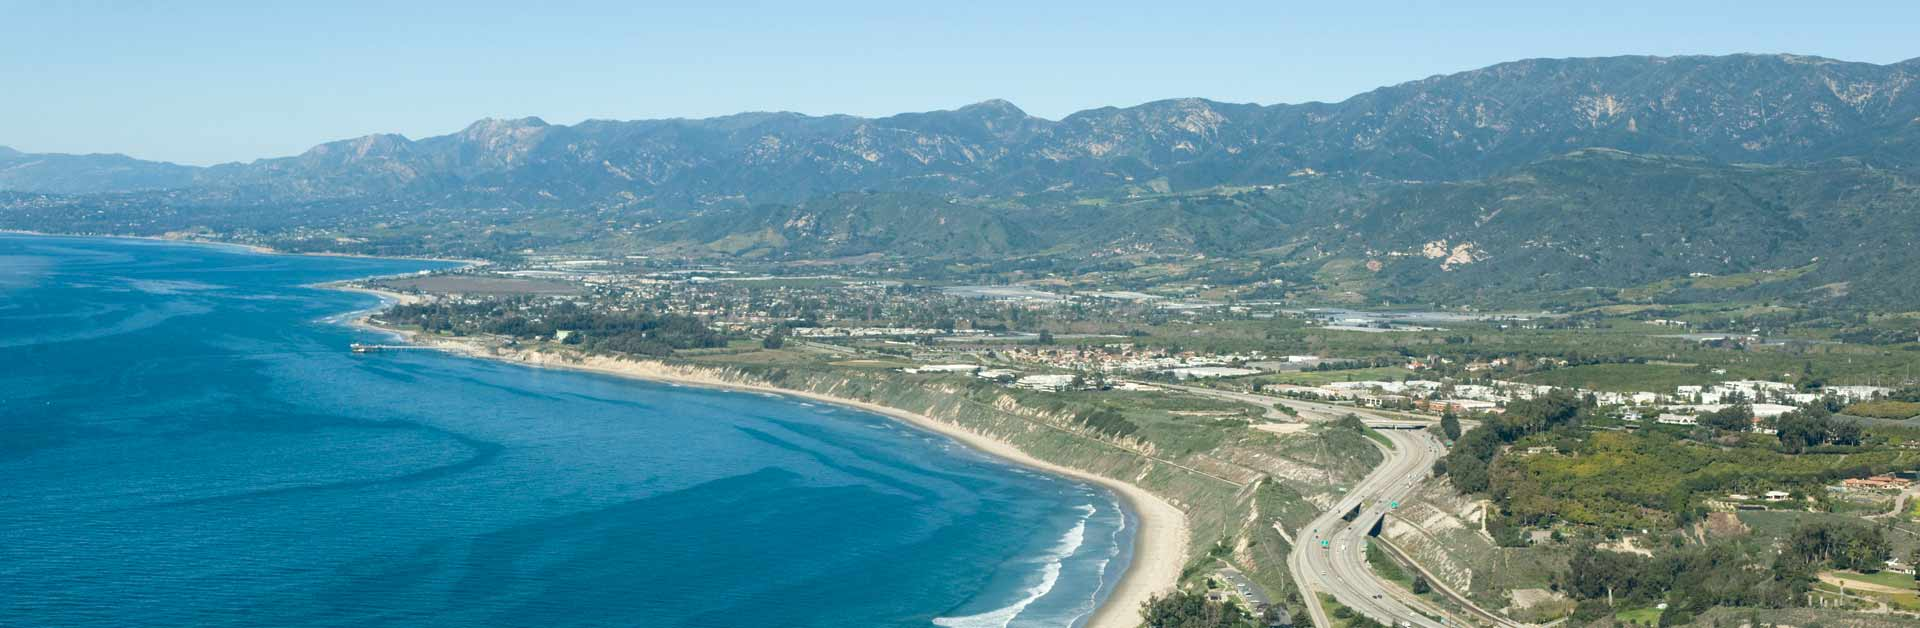 The Santa Barbara Channel and coast.